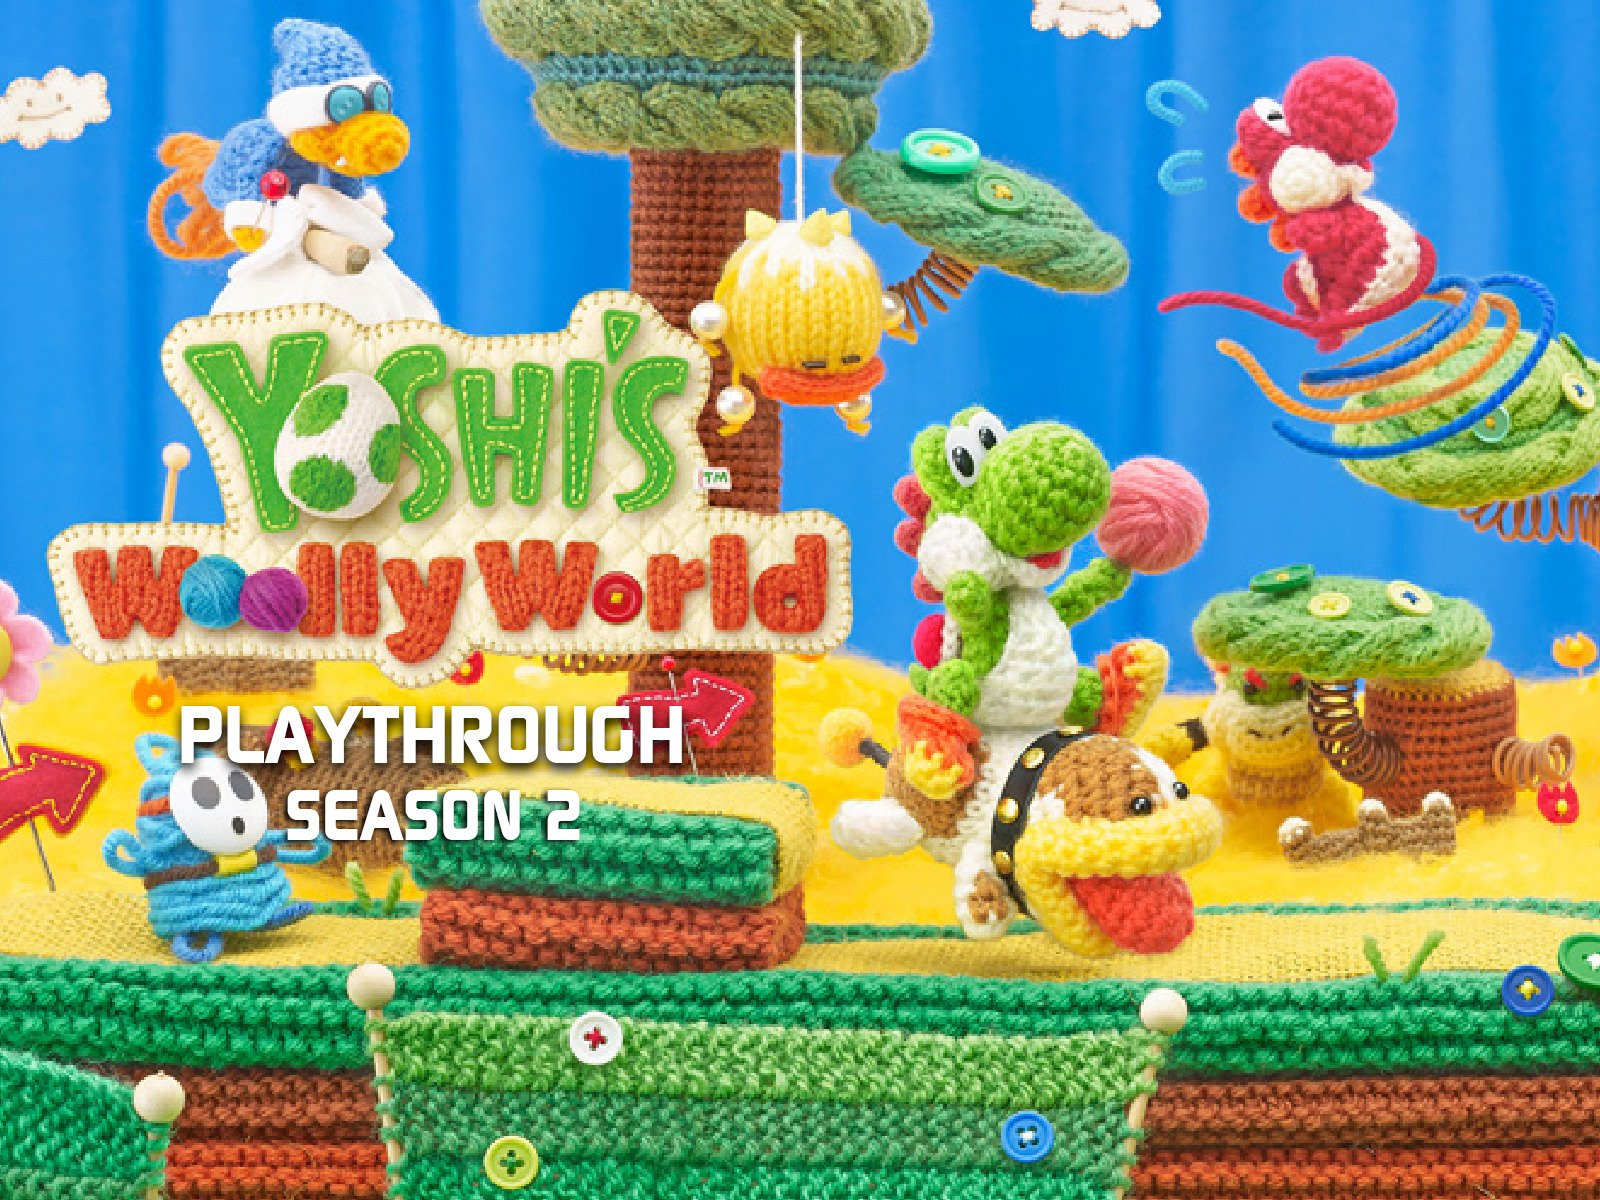 Clip: Yoshi's Wooly World Playthrough